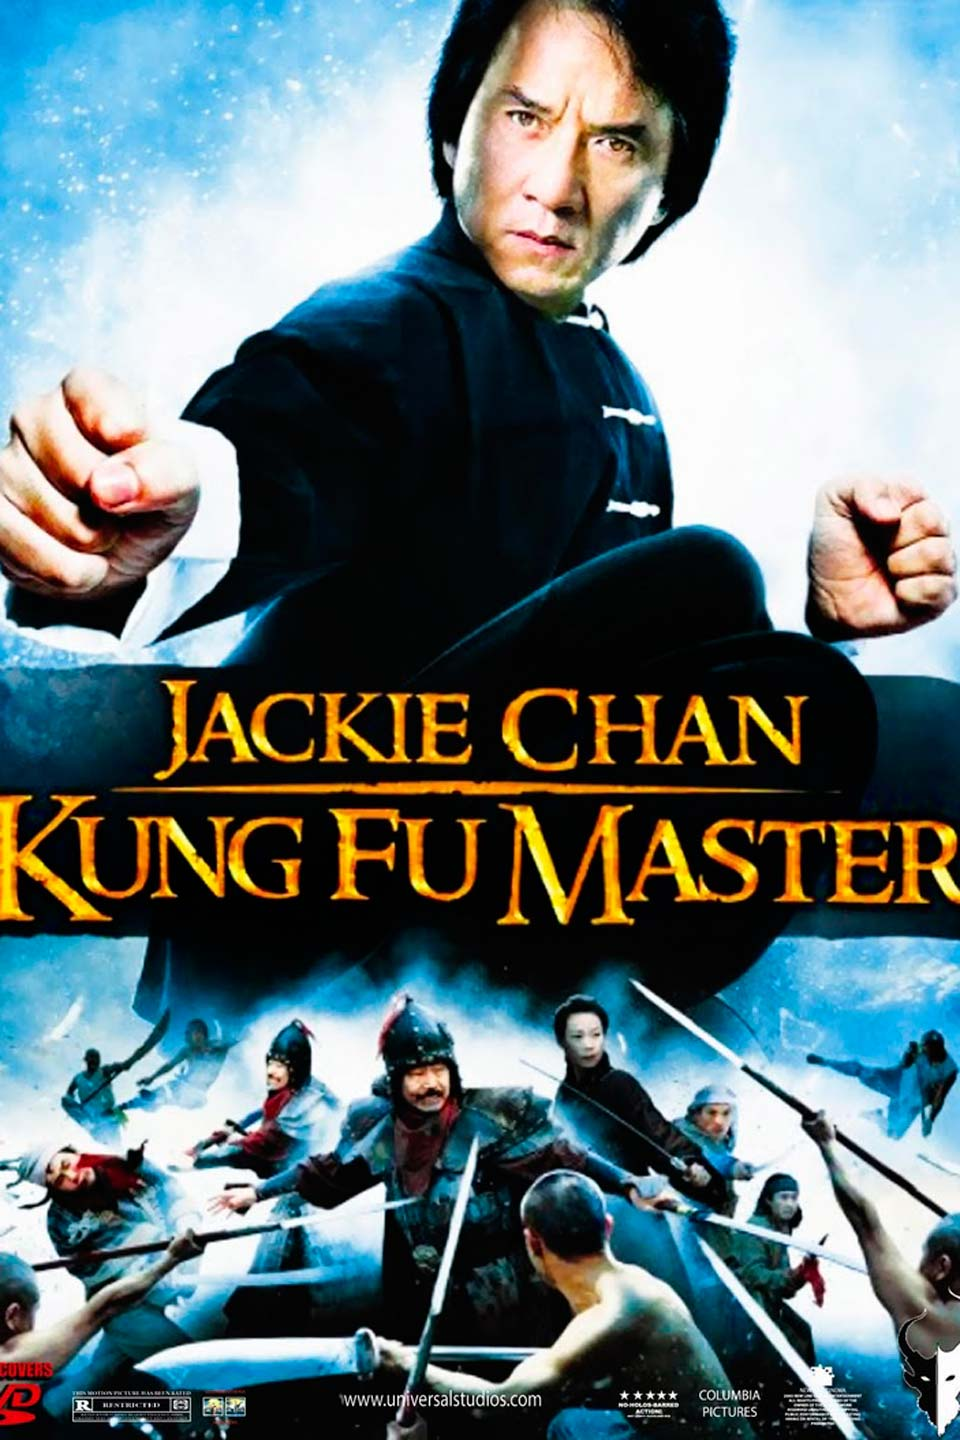 All Jackie Chan Movies On Netflix